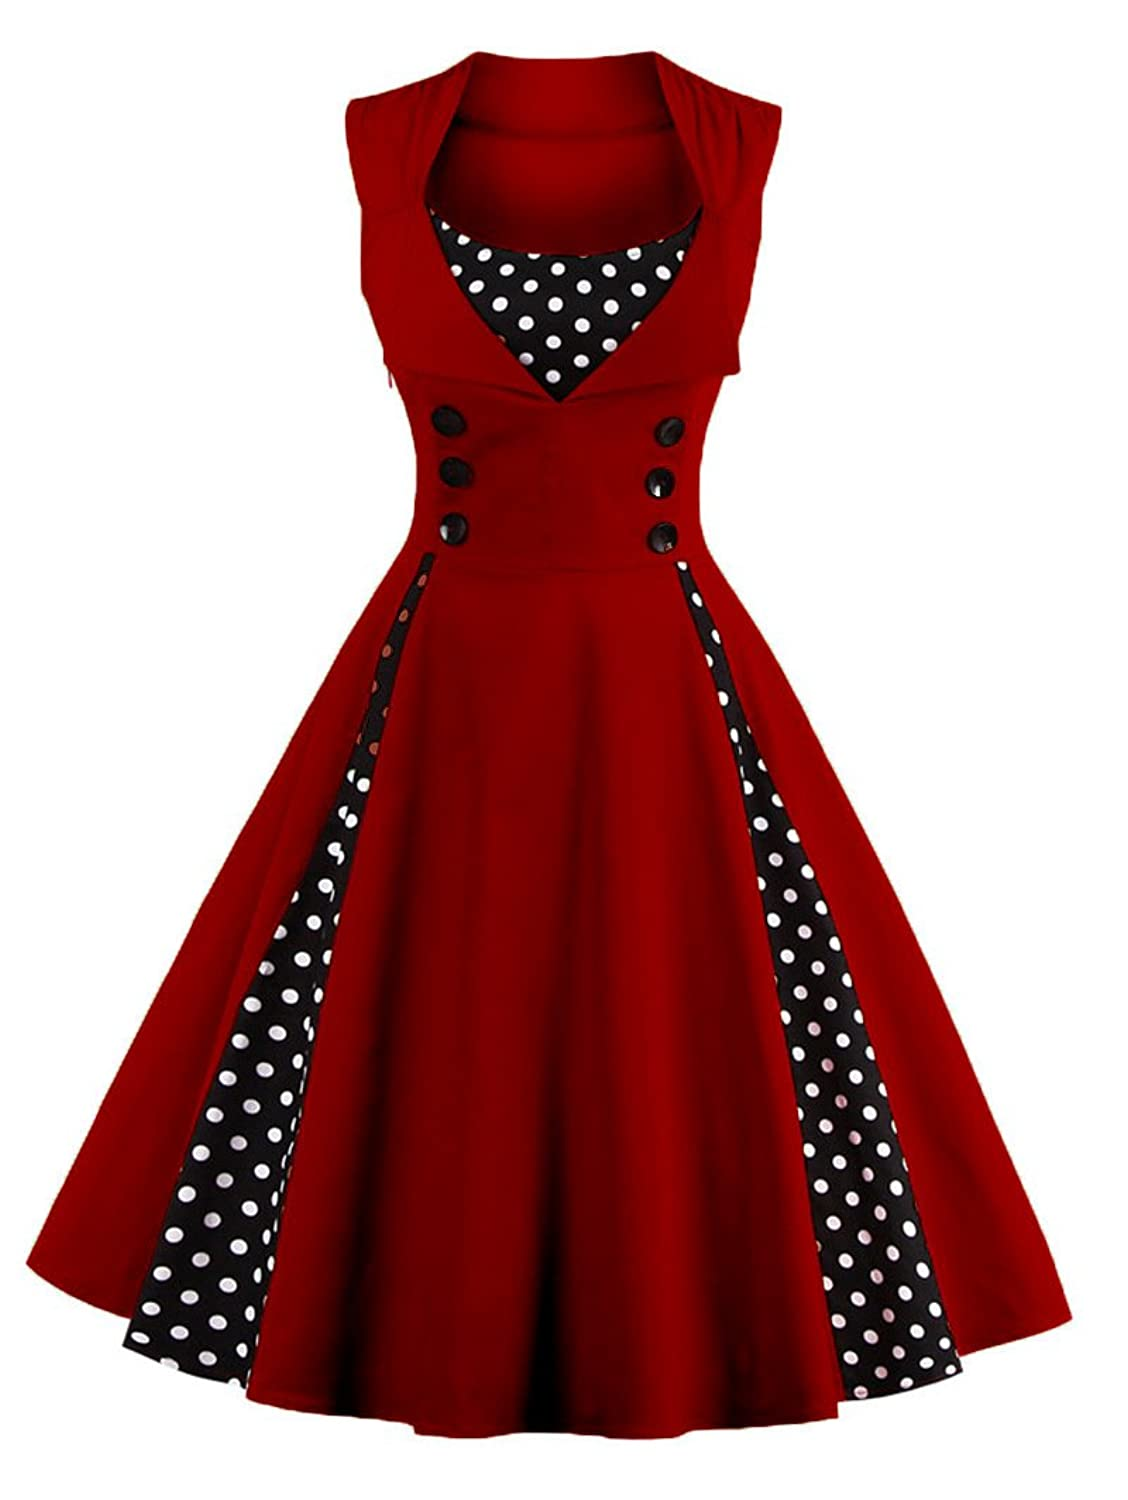 1950s Polka Dot Dresses LUNAJANY Womens Rockabilly Vintage Polka Dot Pin up Swing Cocktail Party Dress $24.59 AT vintagedancer.com